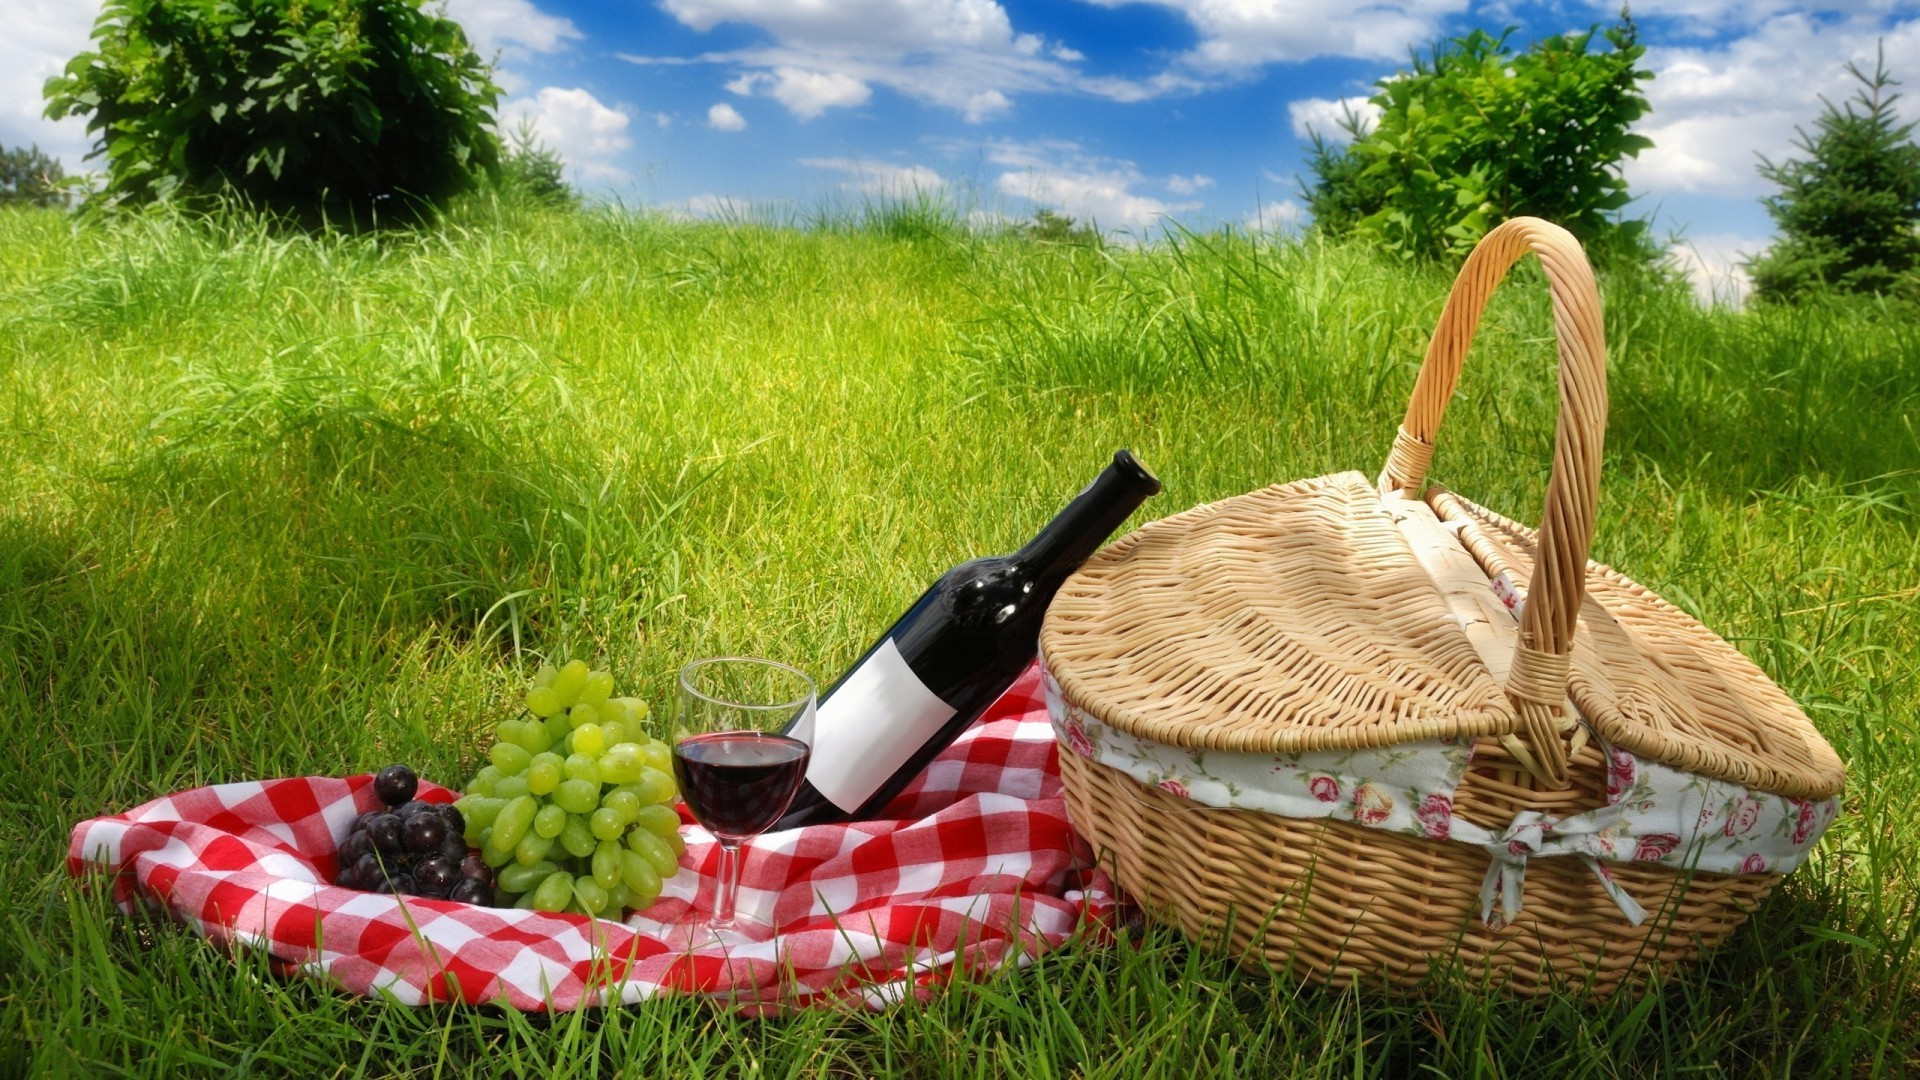 Picnic basket, wine, grapes